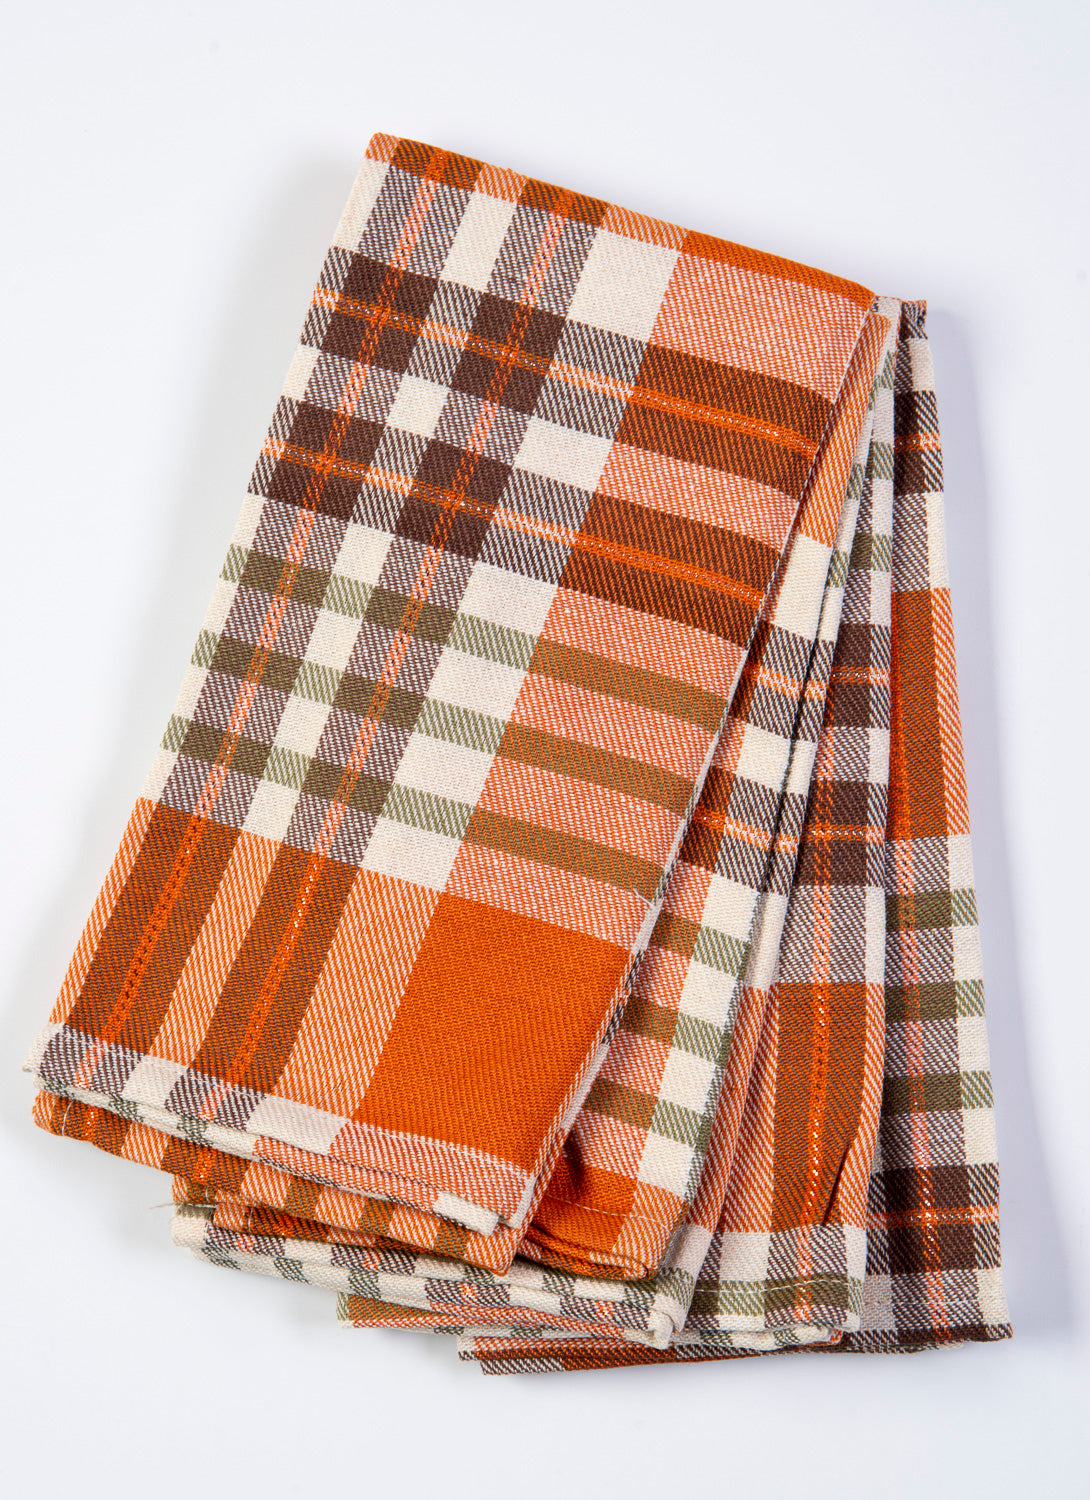 Bardwil linens Berry Plaid set of 4 napkins in warm colours